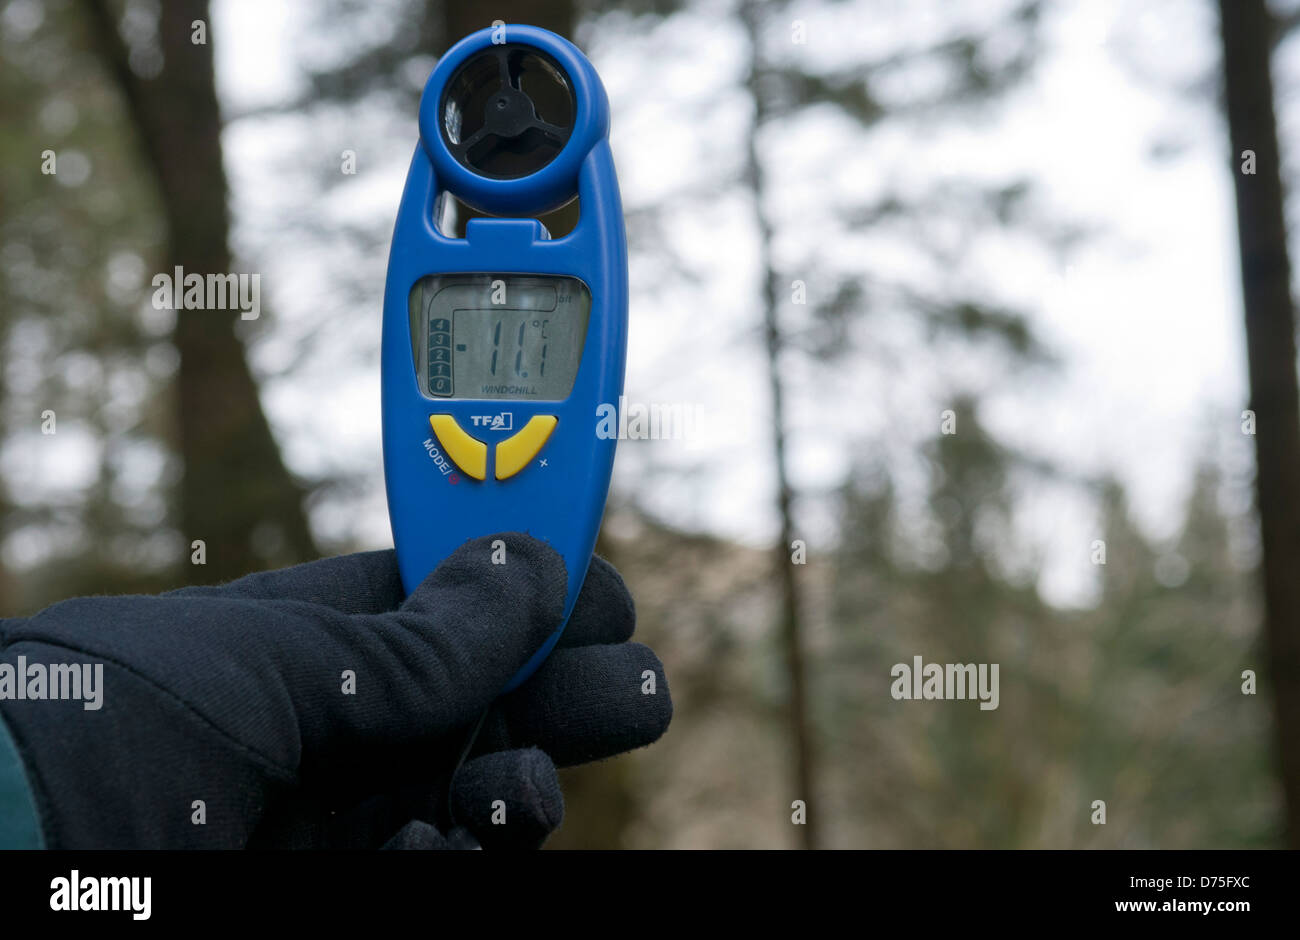 Gloved hand holding up a wind anemometer showing wind chill factor on cold day, UK - Stock Image